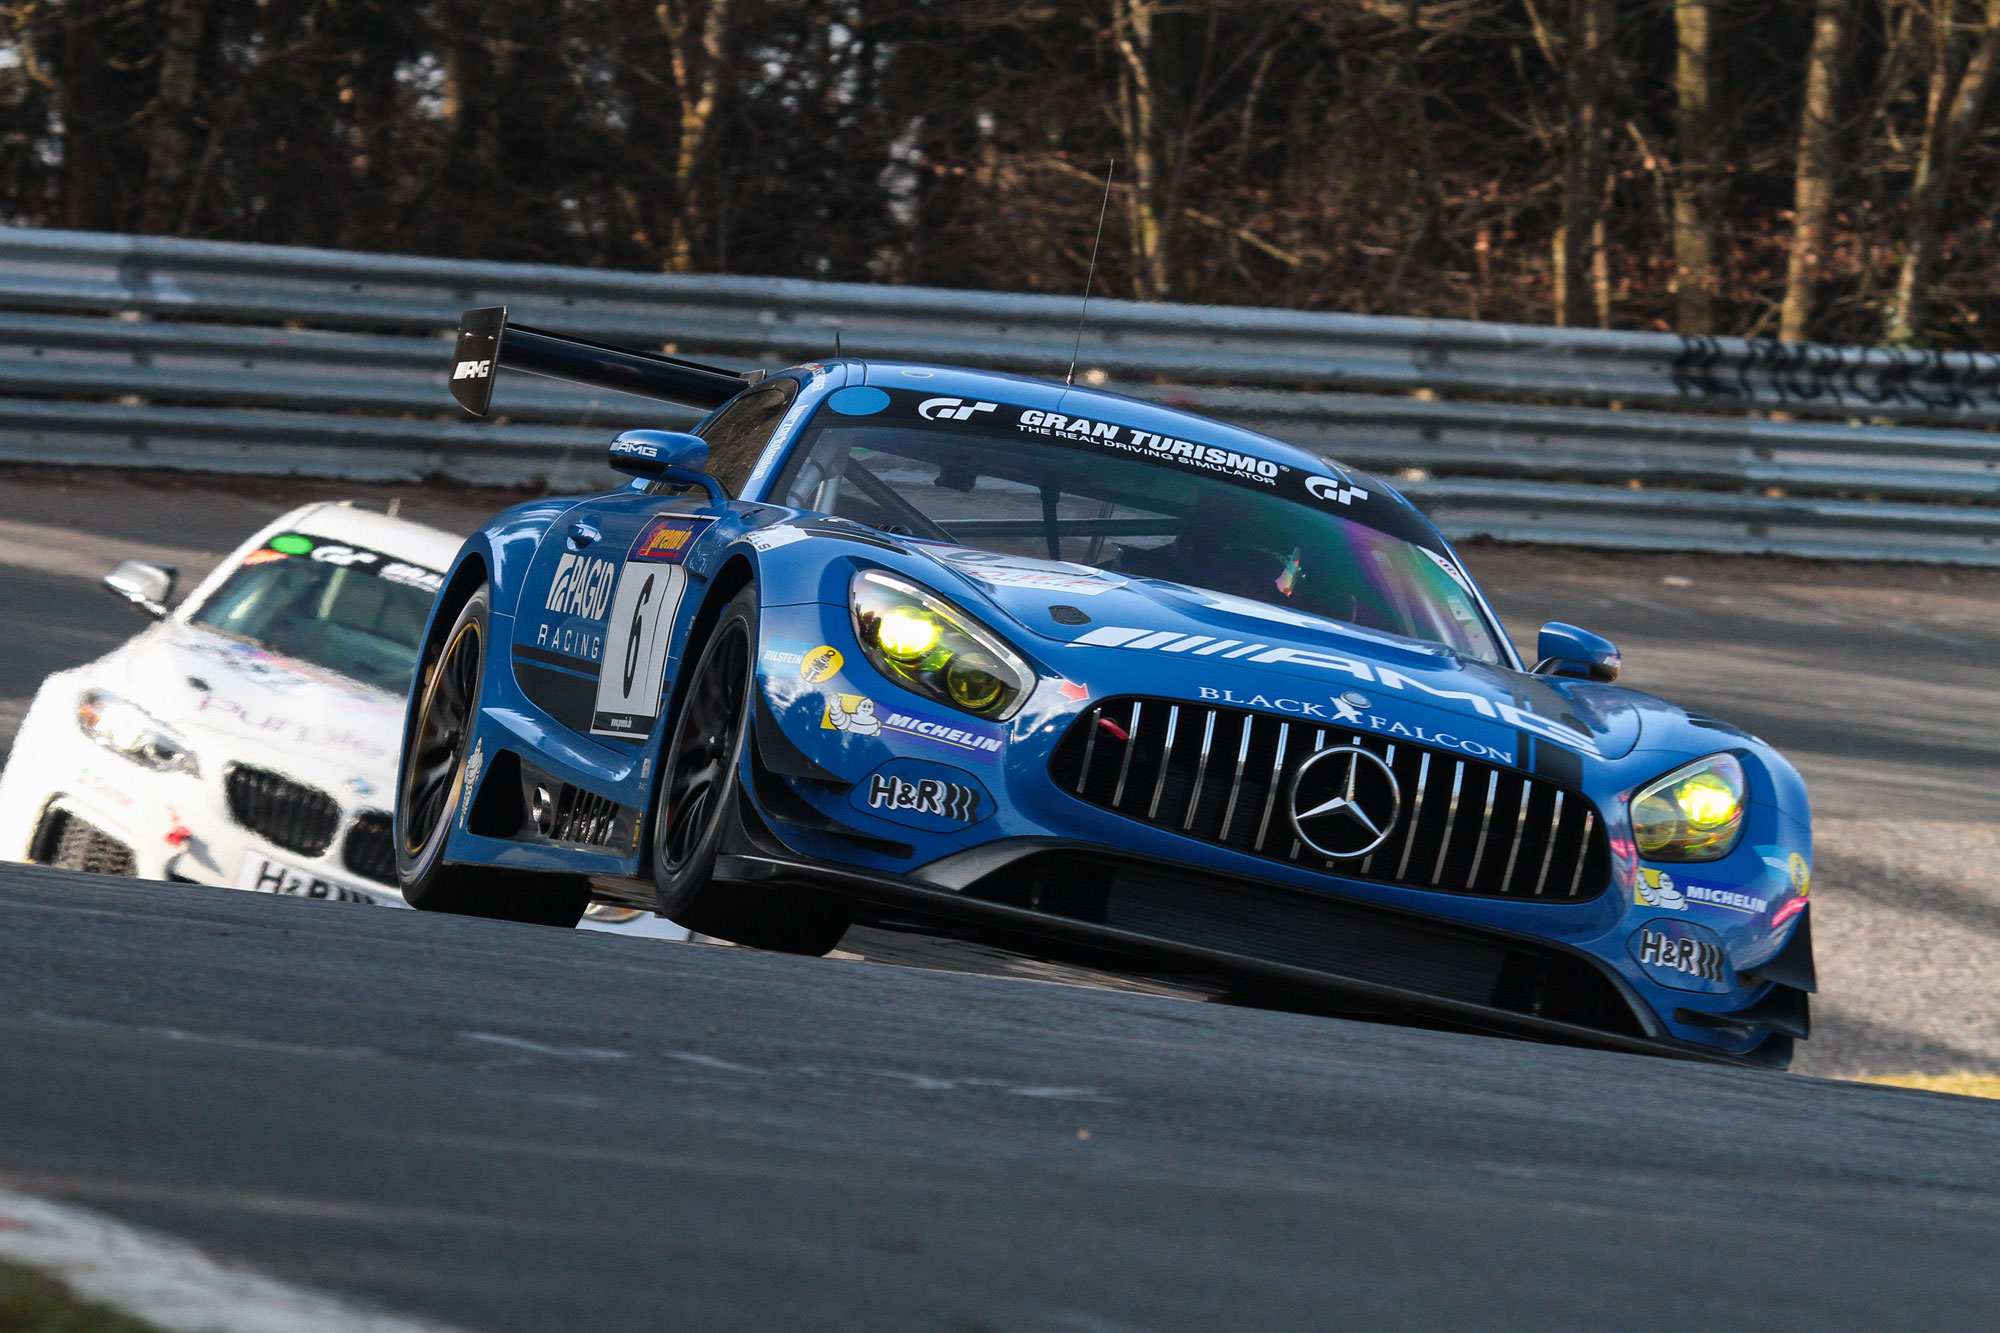 Podium Finish  for Christodoulou in Mercedes-AMG VLN Season Opener